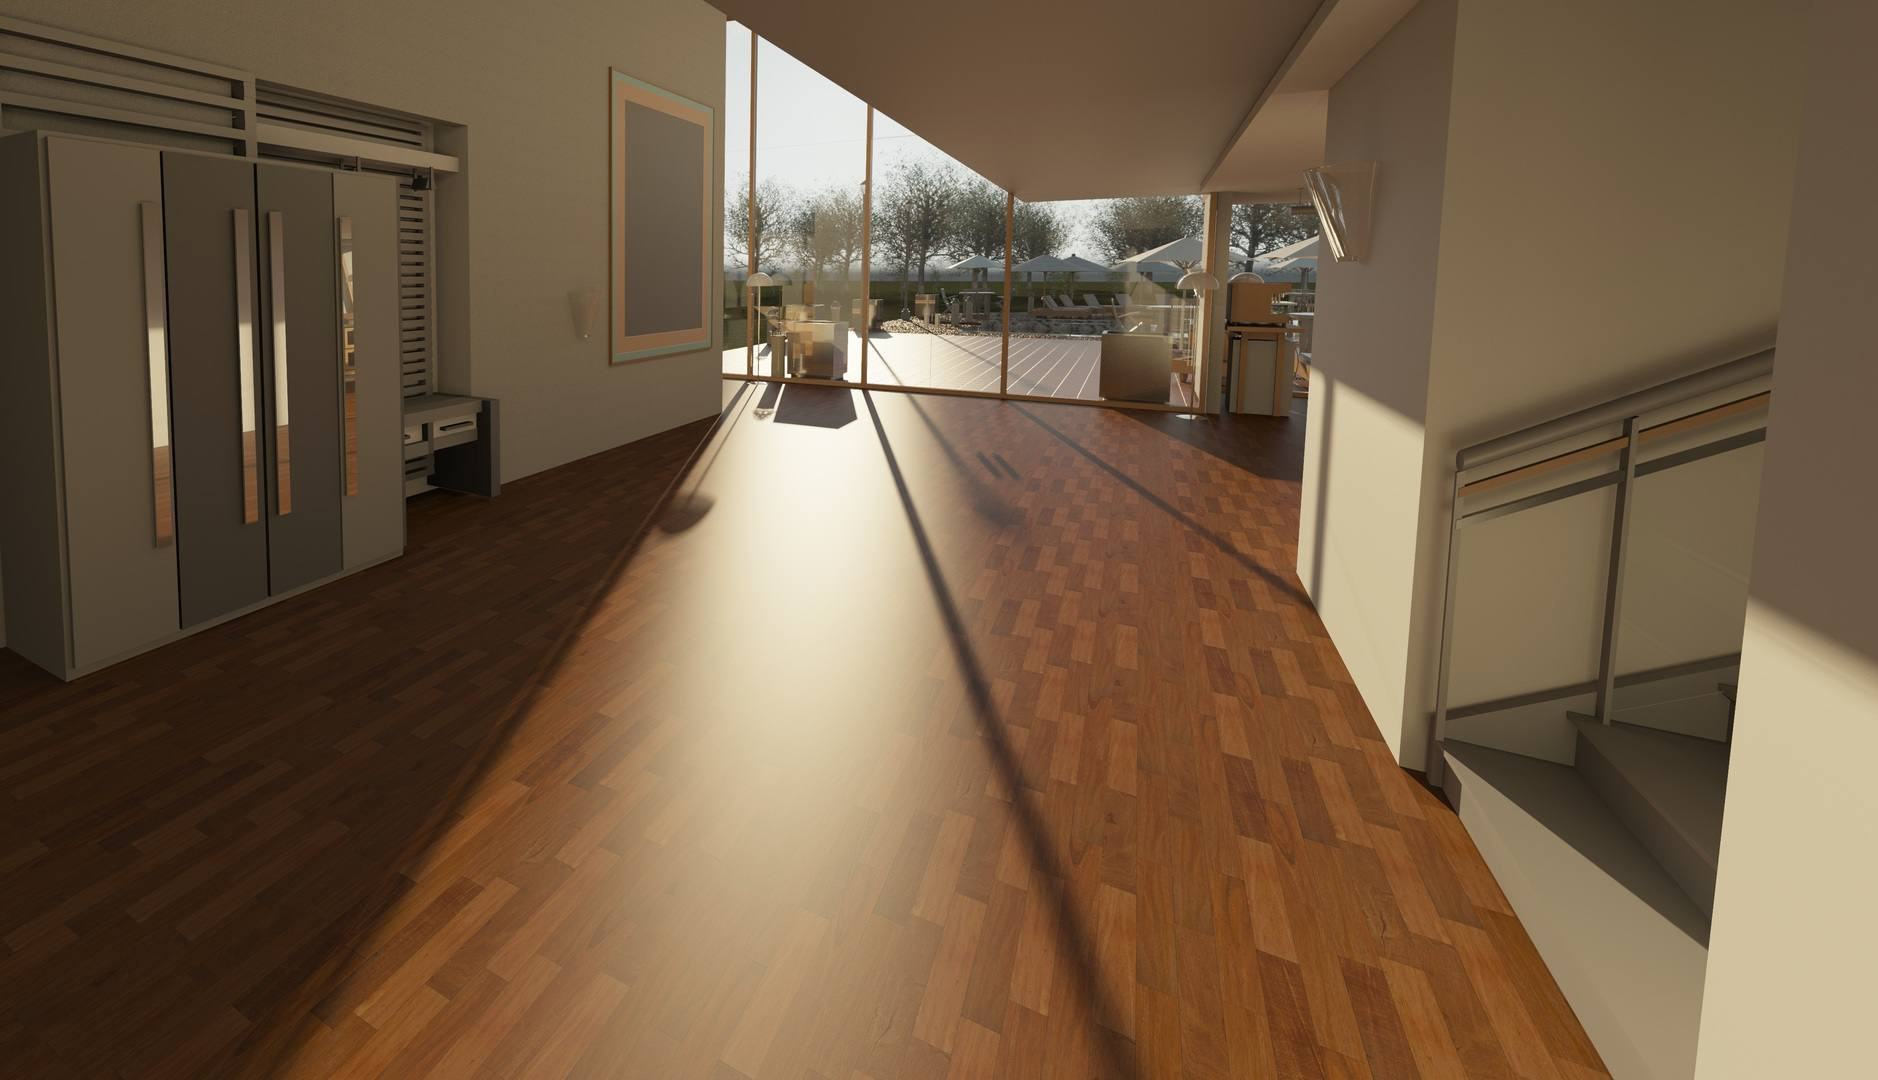 glue down hardwood floor problems of common flooring types currently used in renovation and building with architecture wood house floor interior window 917178 pxhere com 5ba27a2cc9e77c00503b27b9